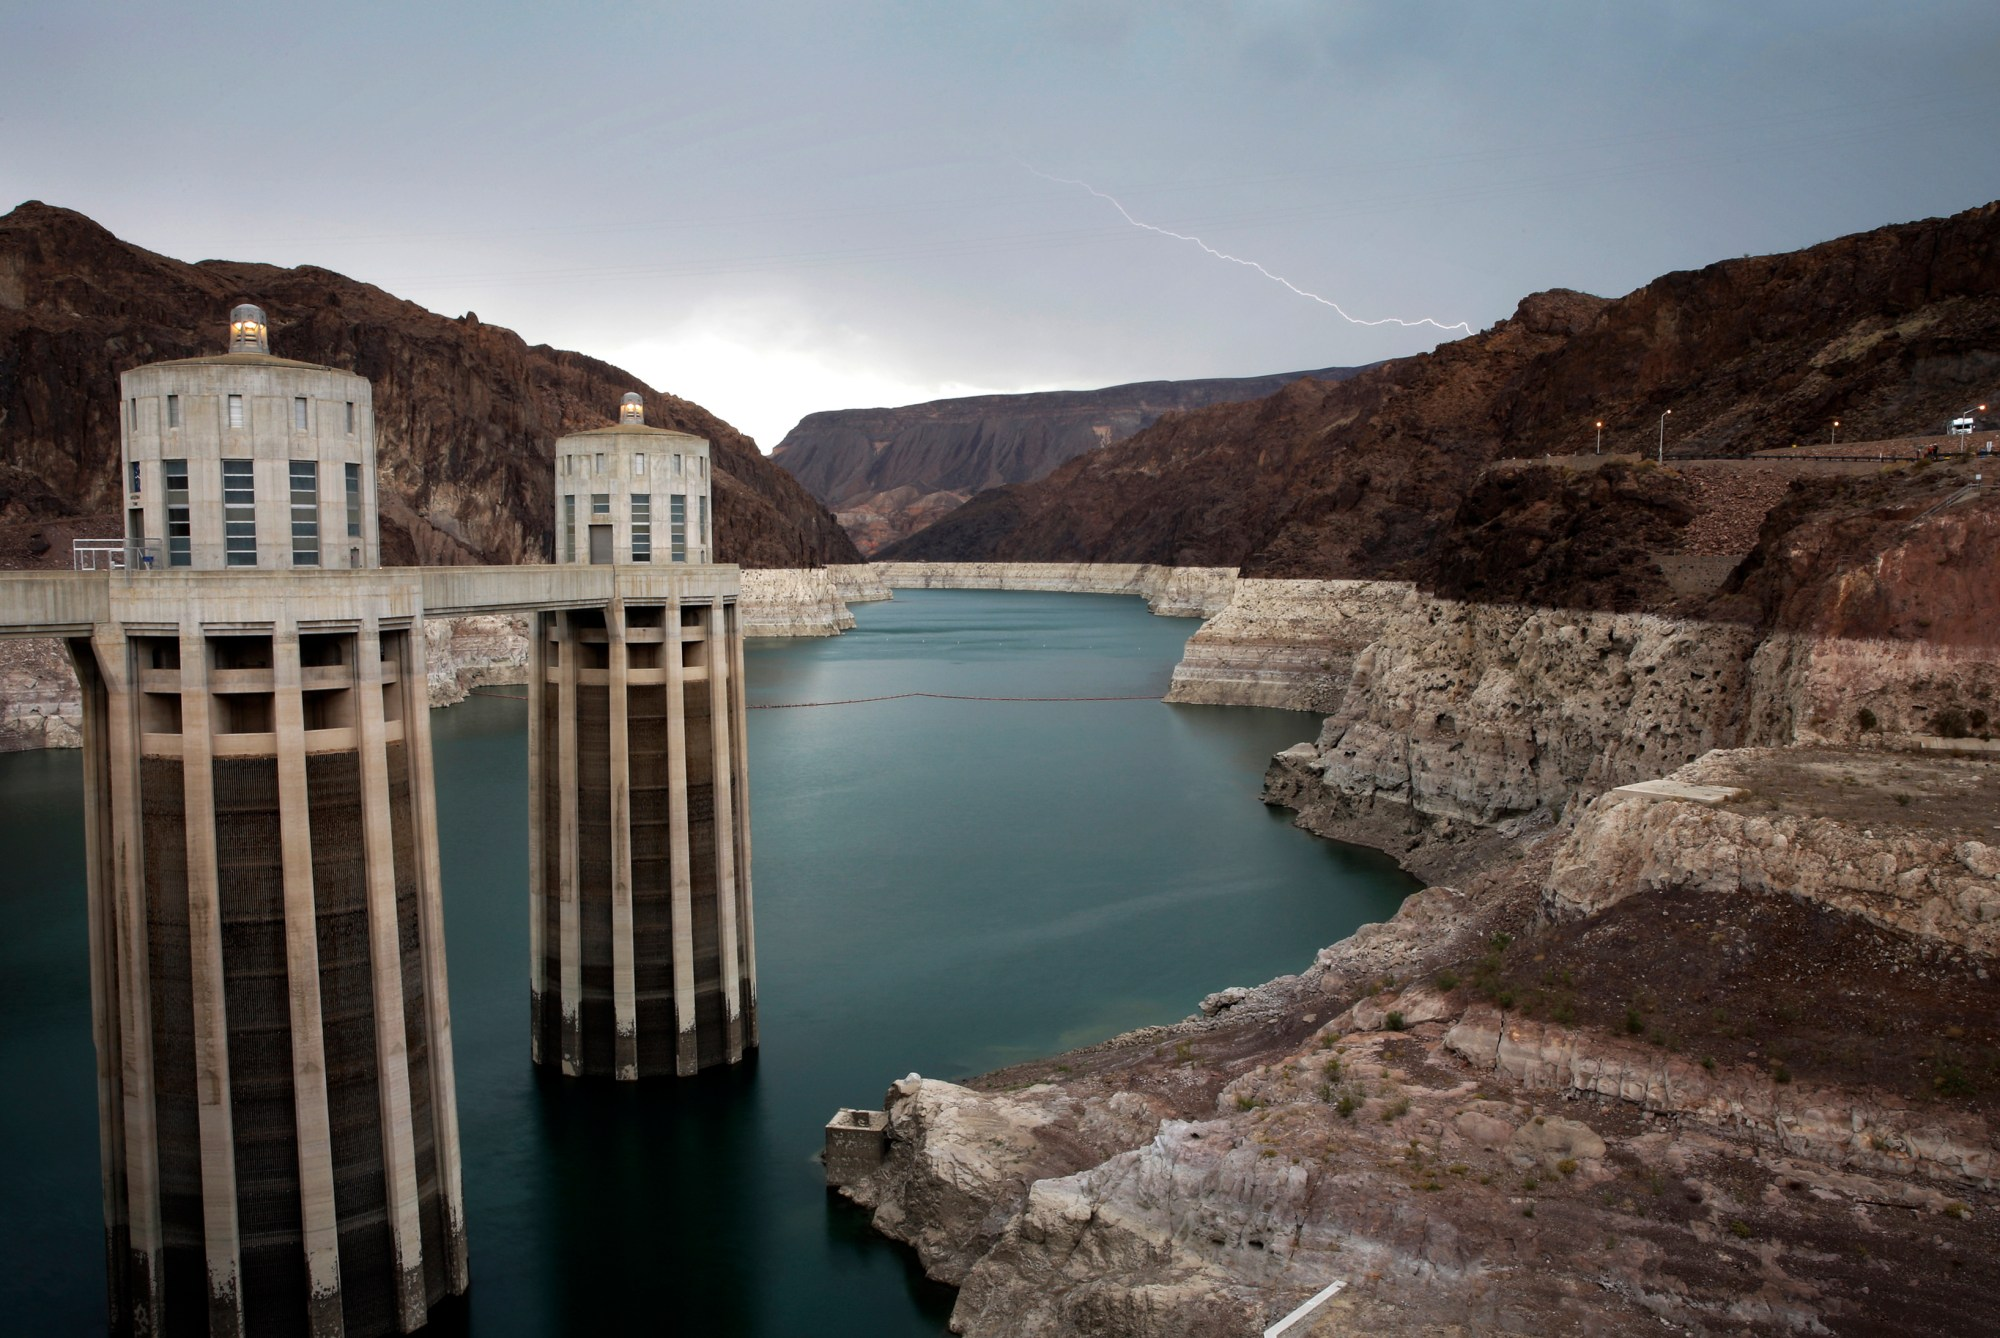 Colorado_River_Water_Drought_17077-159532.jpg69730706